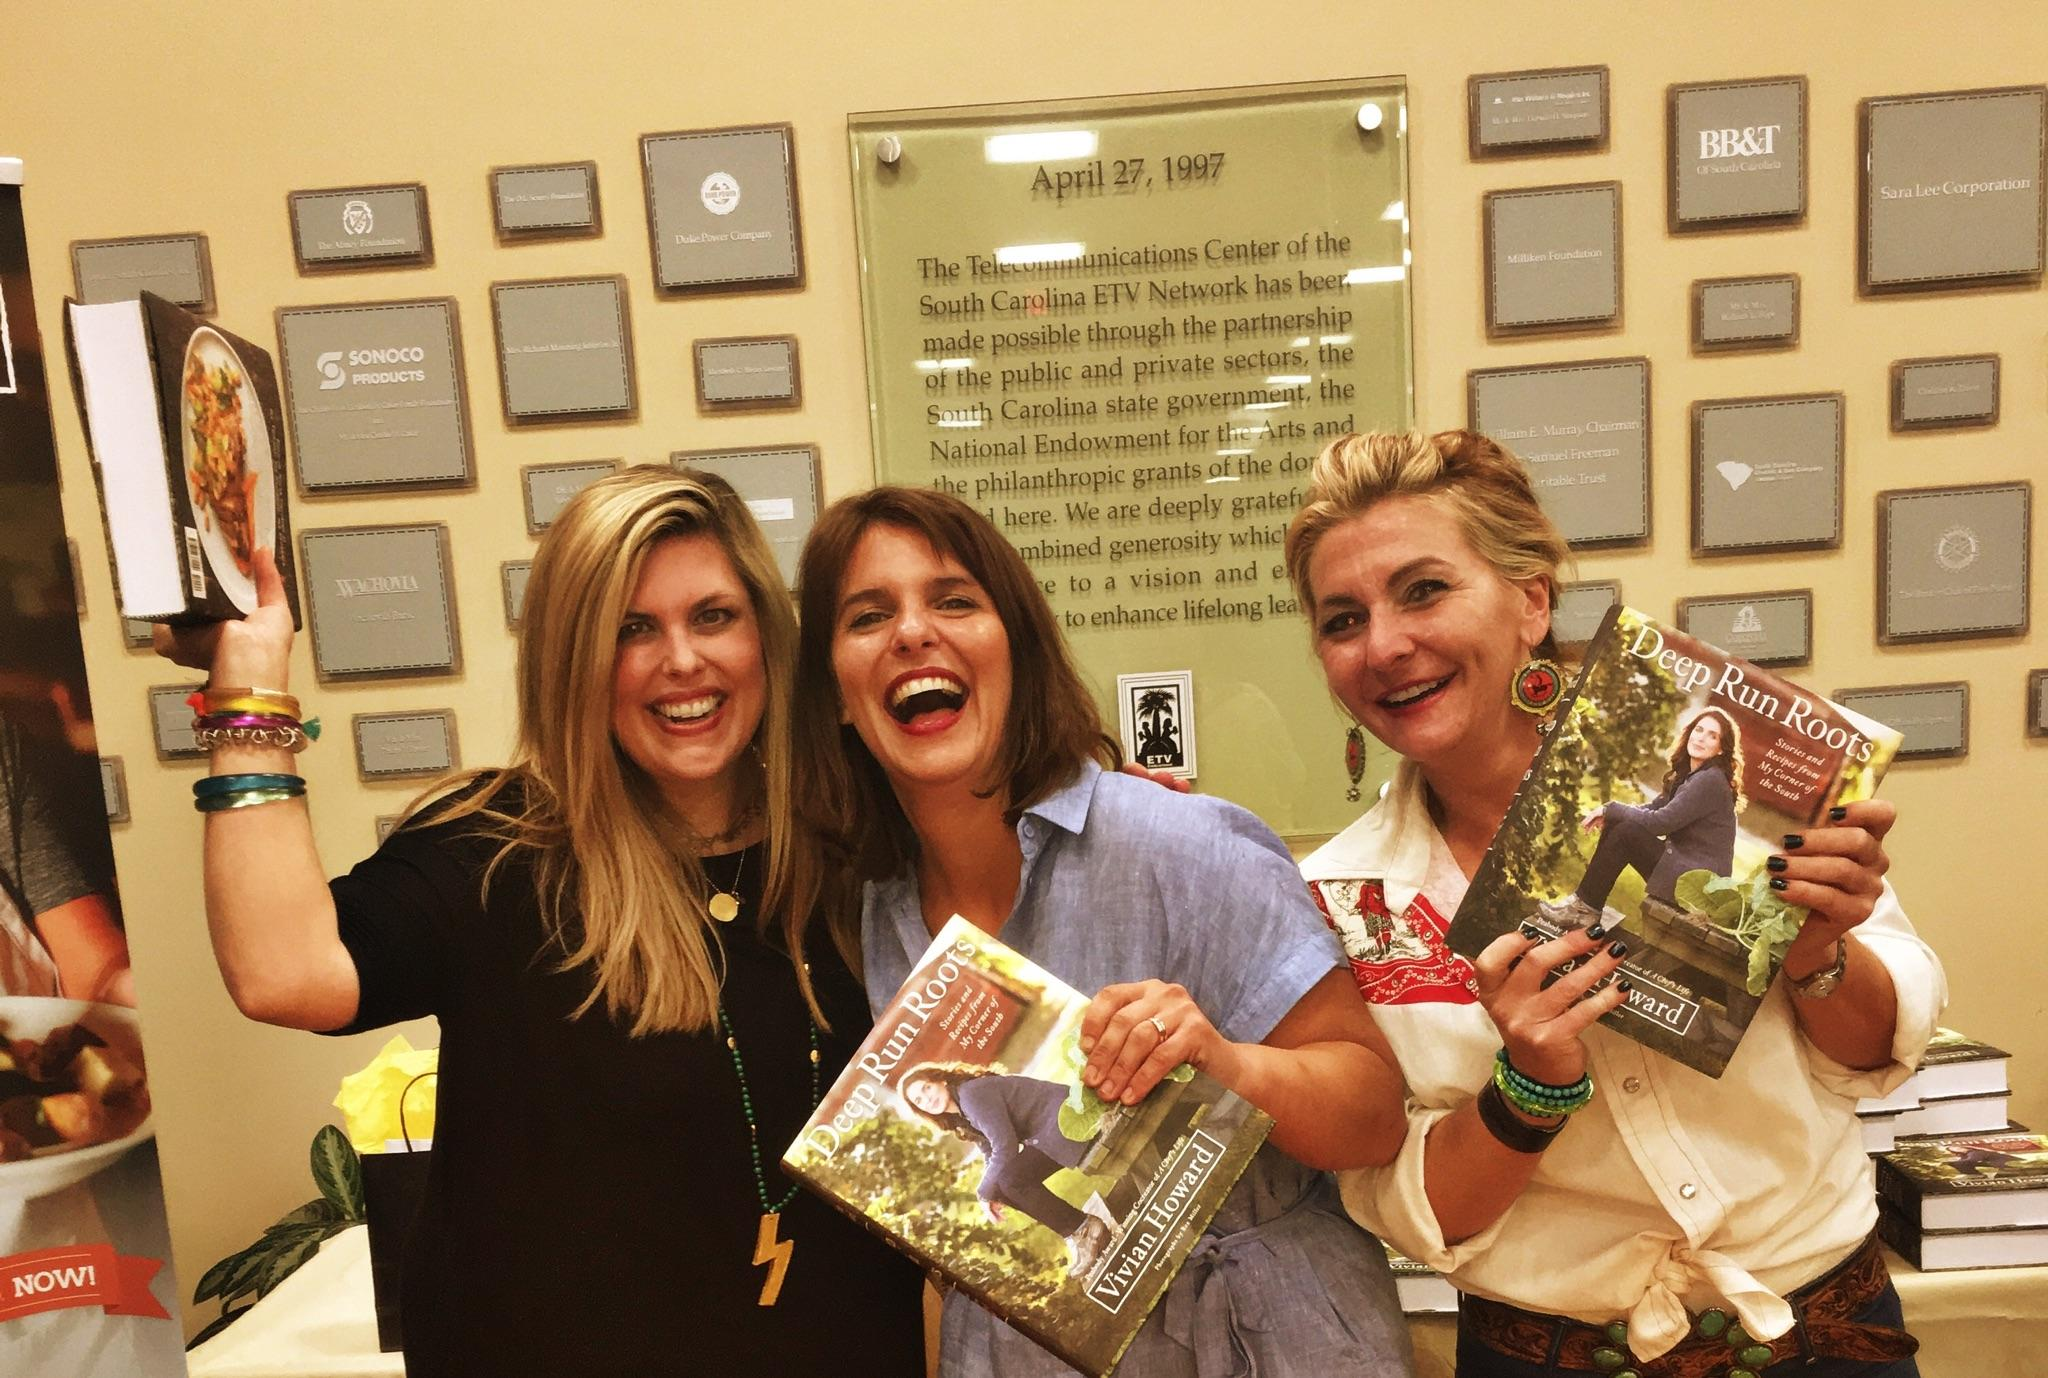 The moment I learned bestseller news with my buddies - Elizabeth Pearson & Cydney White in Columbia, SC